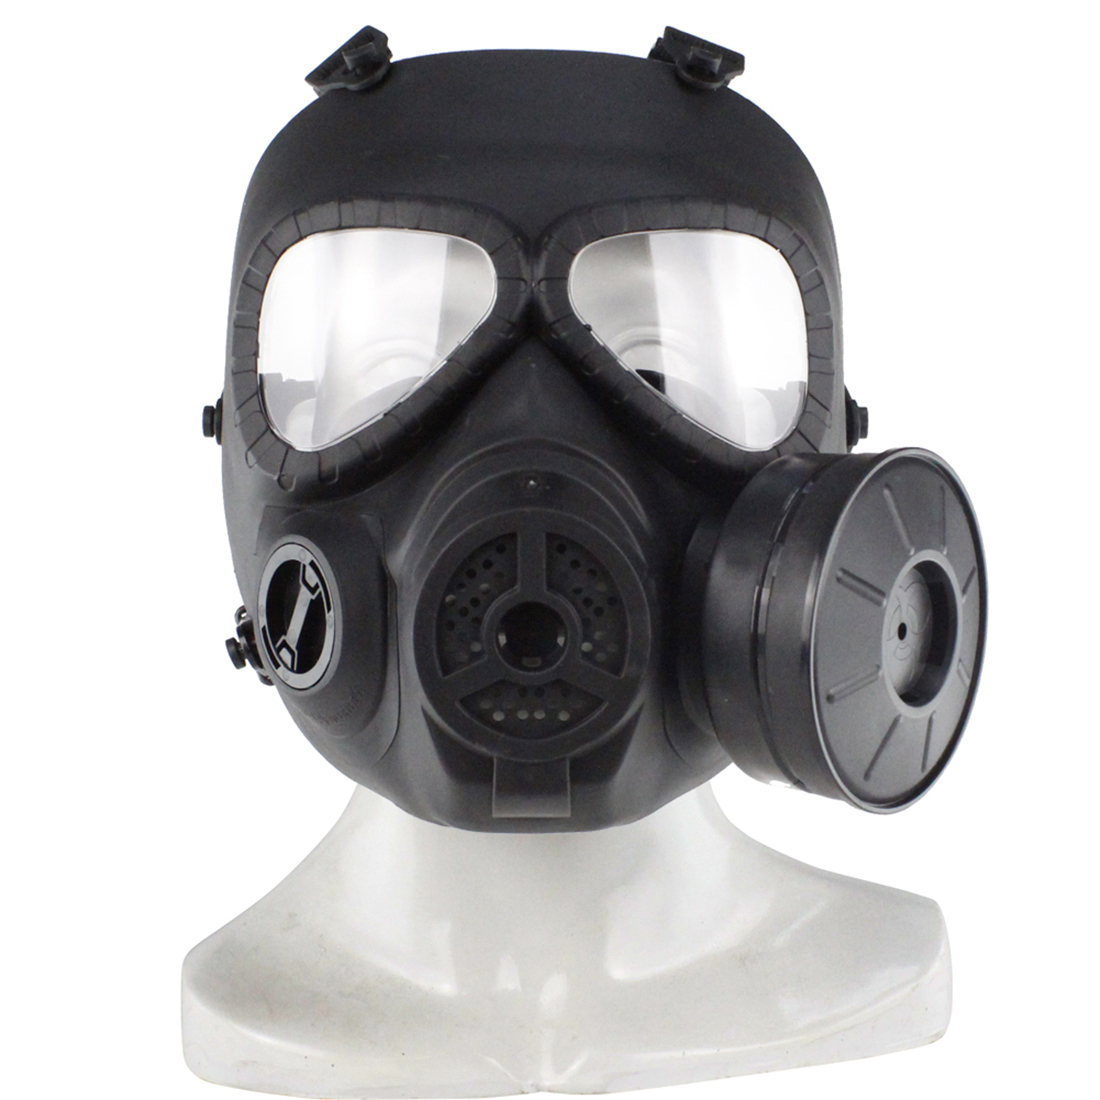 Creative Simulation Tactical Head Mask Full Face Respirator Single Canister Electric Ventilative Biochemical Gas Mask For Nerf/airsoft Toy Guns